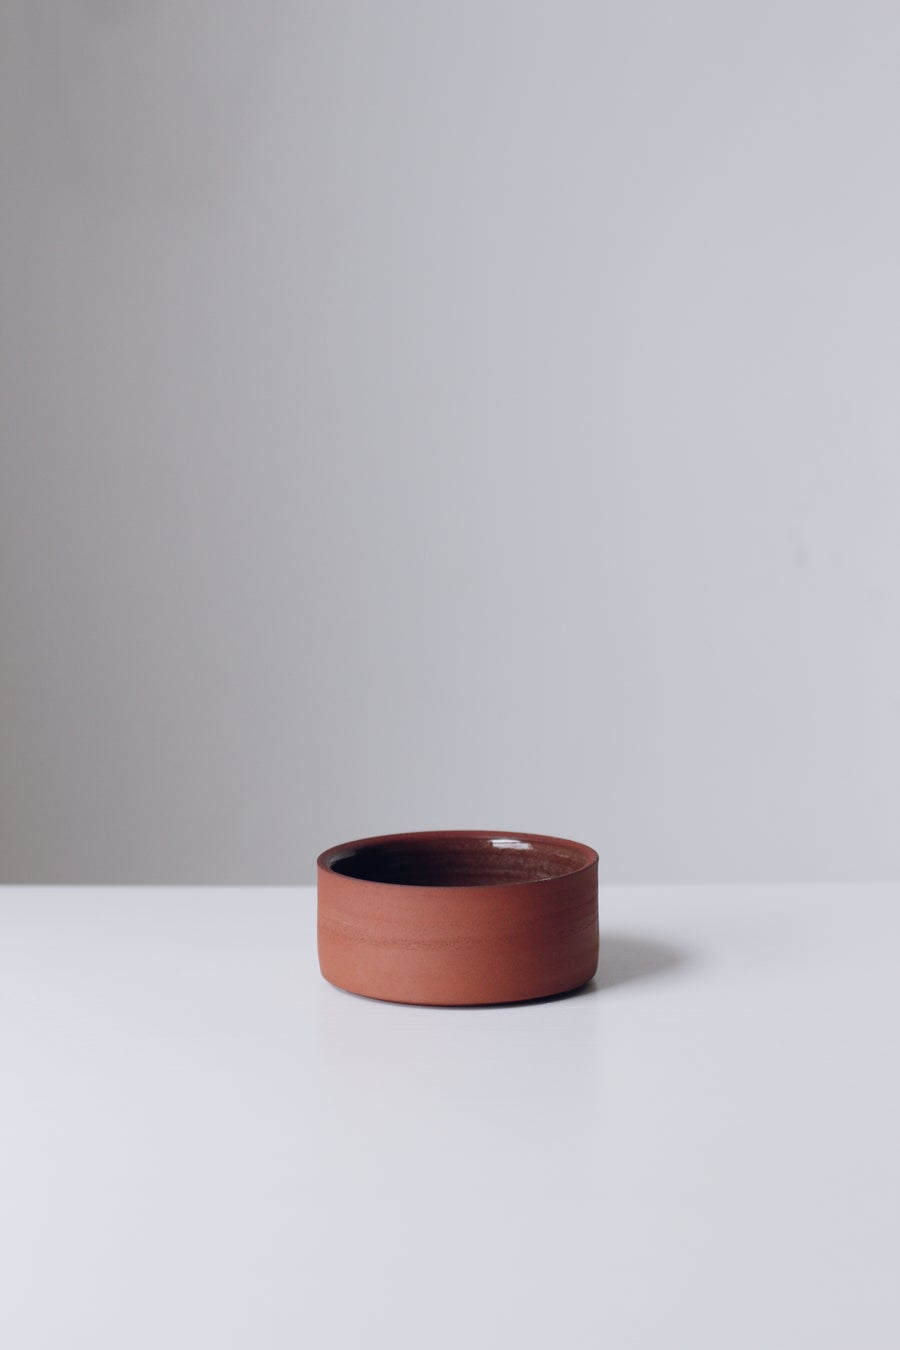 Image of Terracotta Breakfast Bowl